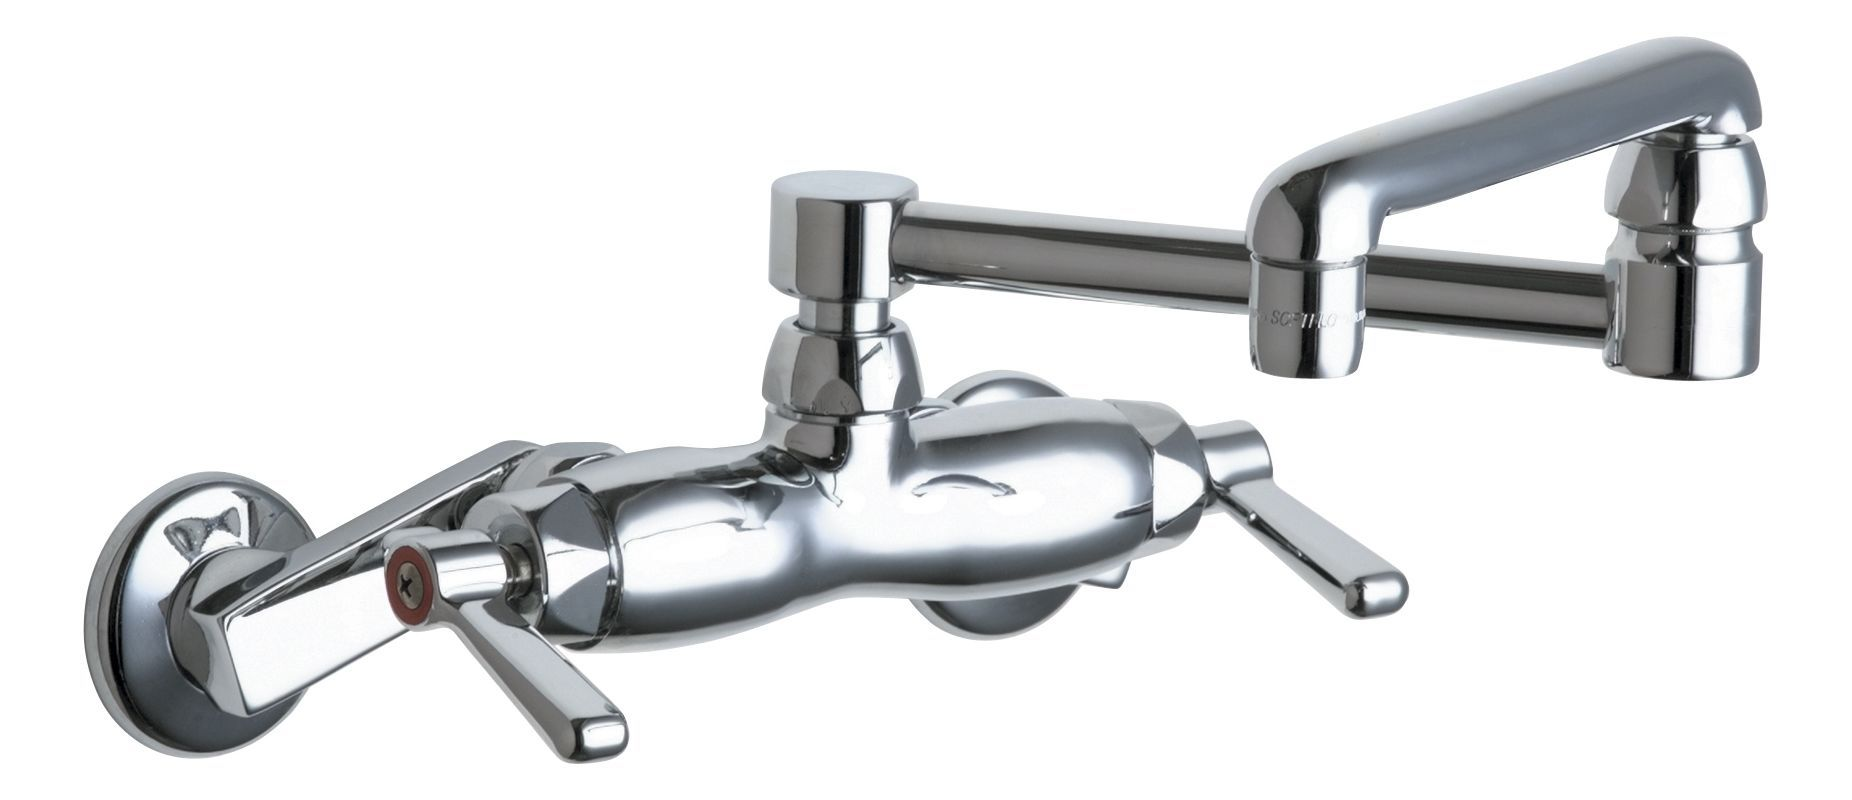 Chicago Faucets 445-DJ13AB Wall Mounted Pot Filler Faucet with Lever ...